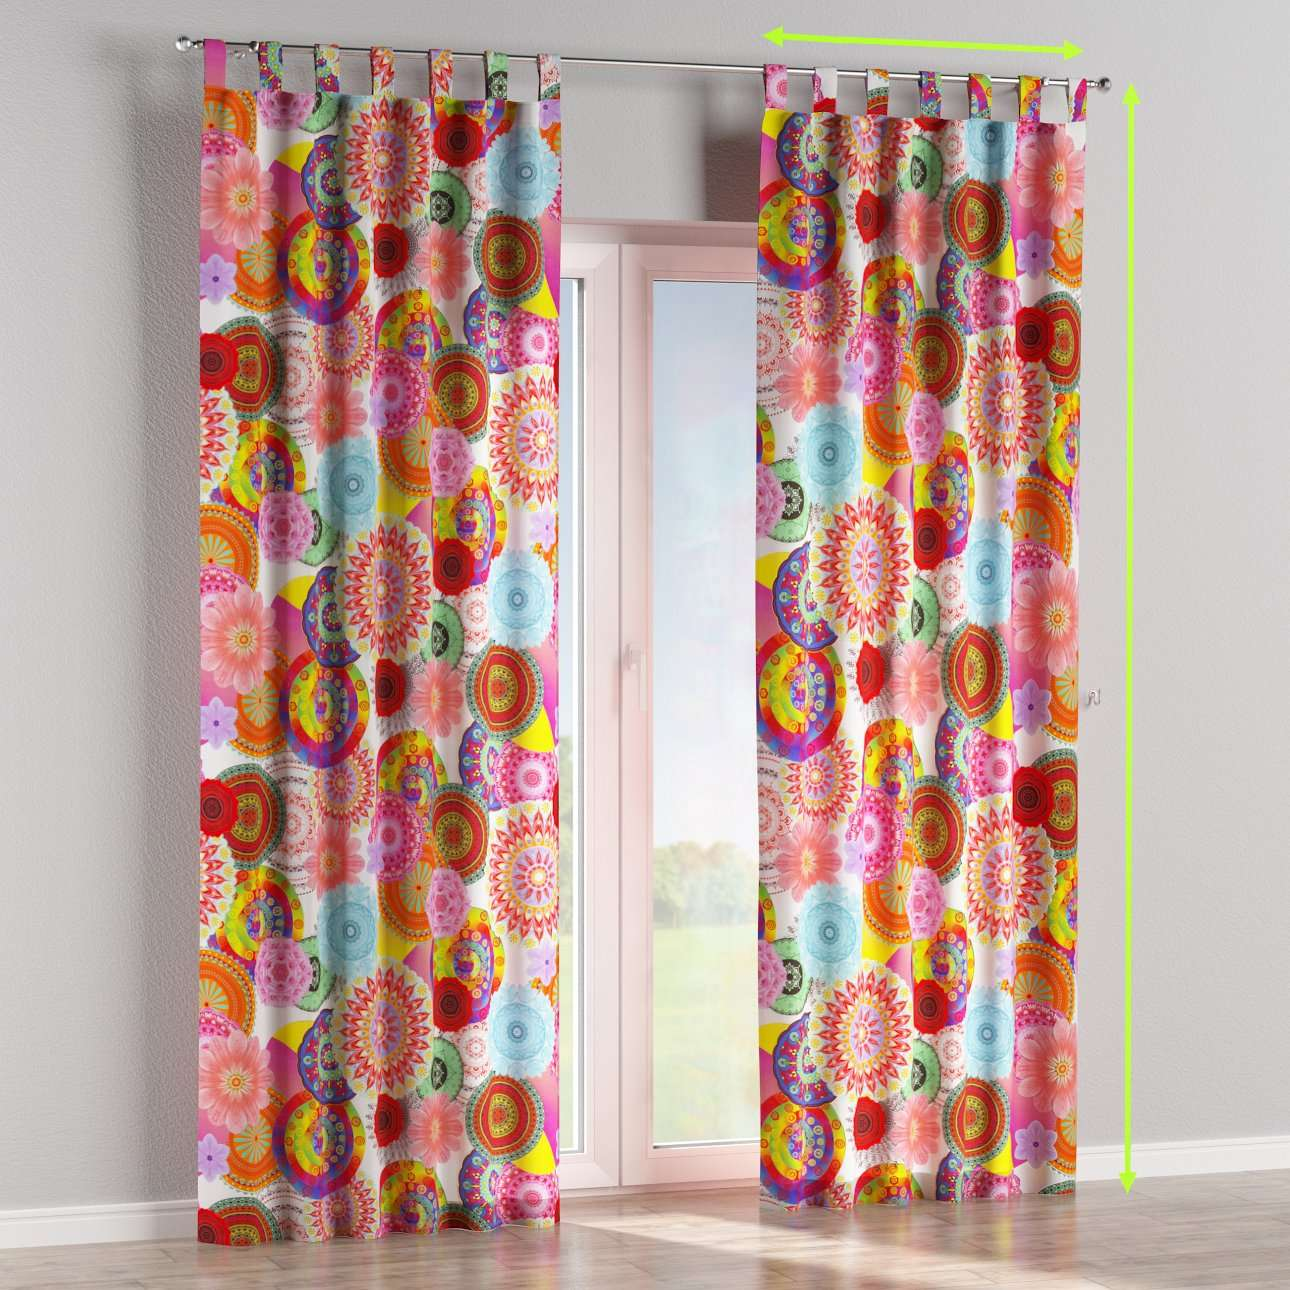 Tab top curtains in collection Comic Book & Geo Prints, fabric: 135-22